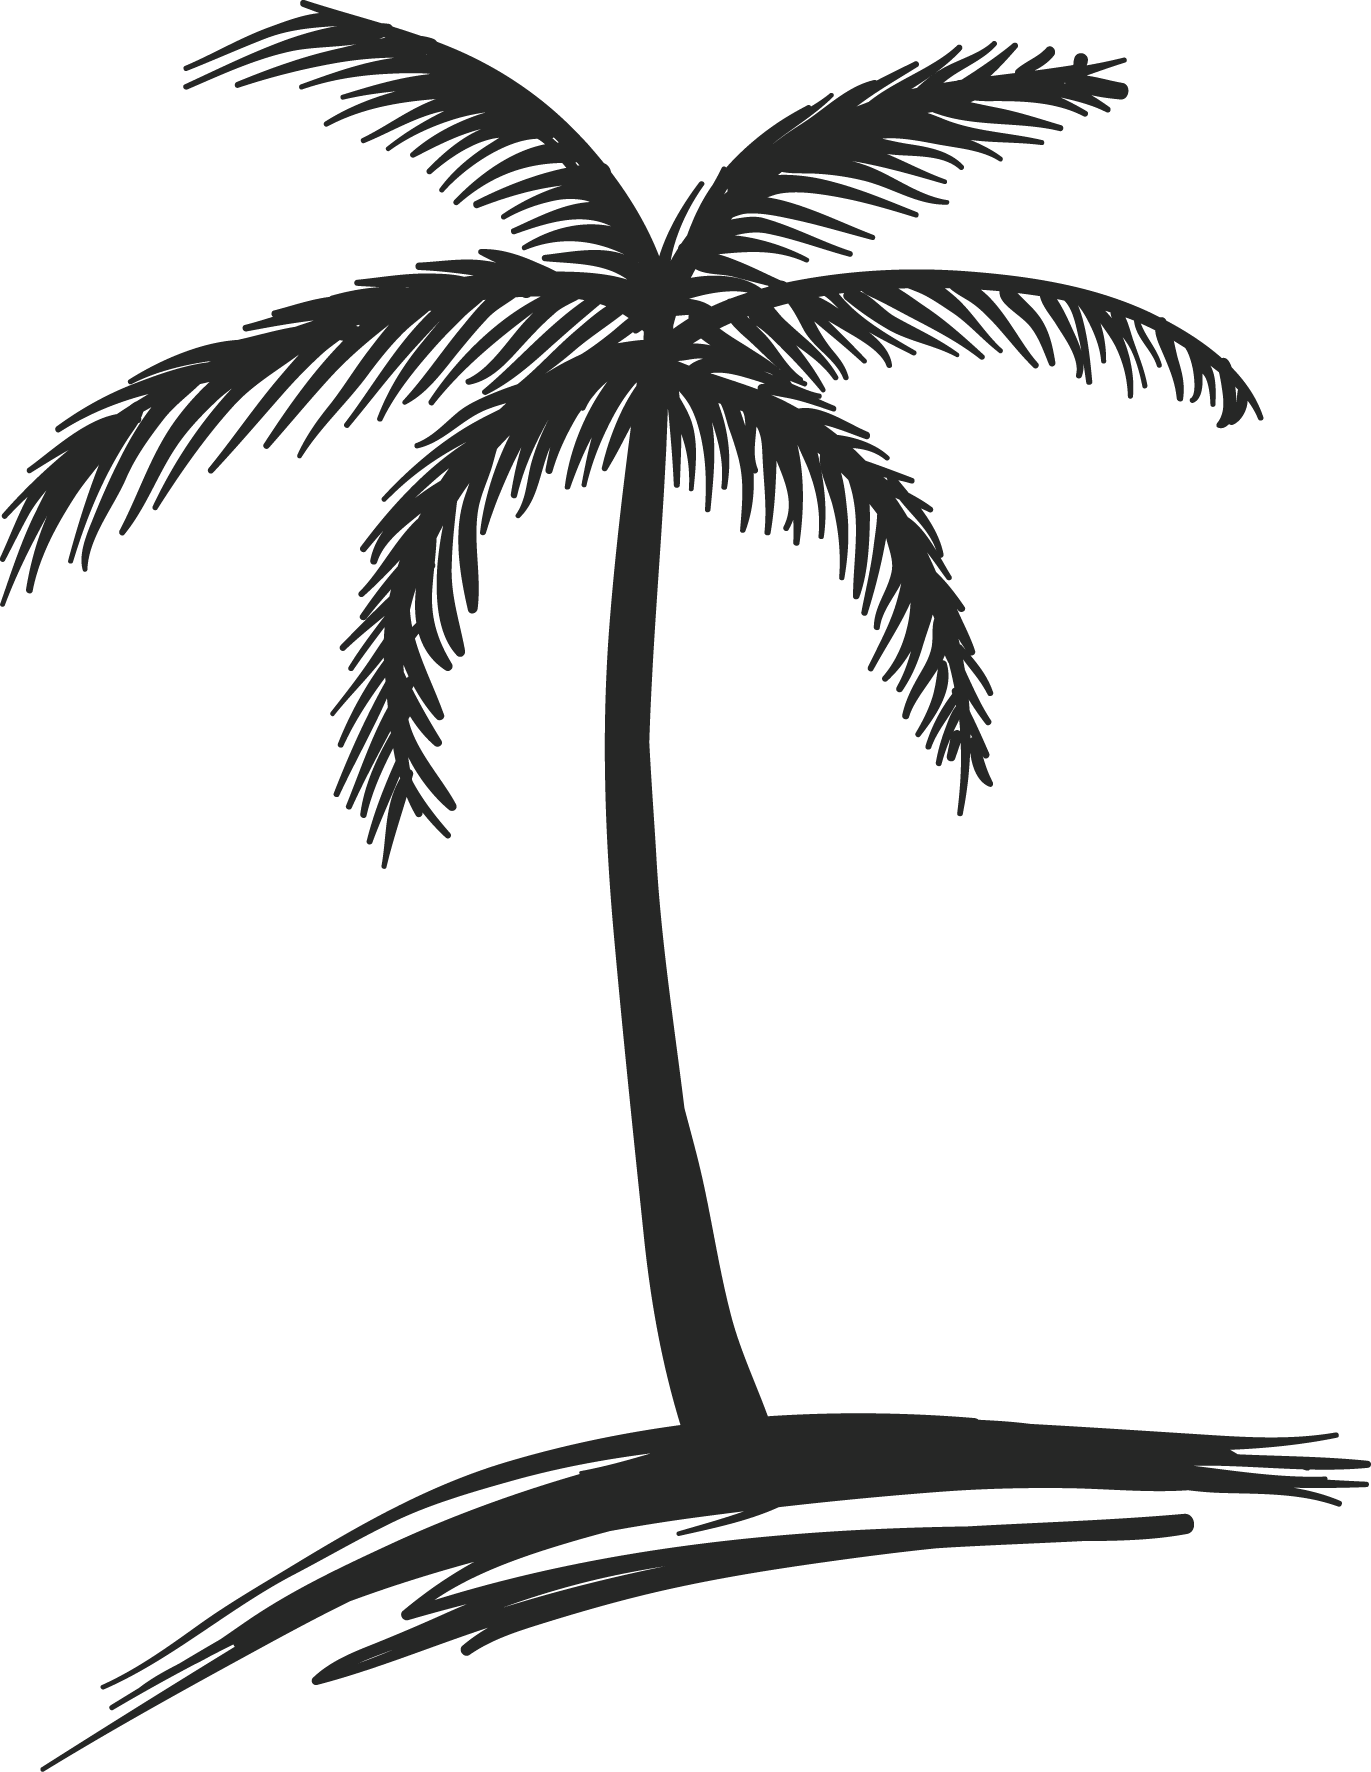 Coconut tree vector png. Free drawing download clip